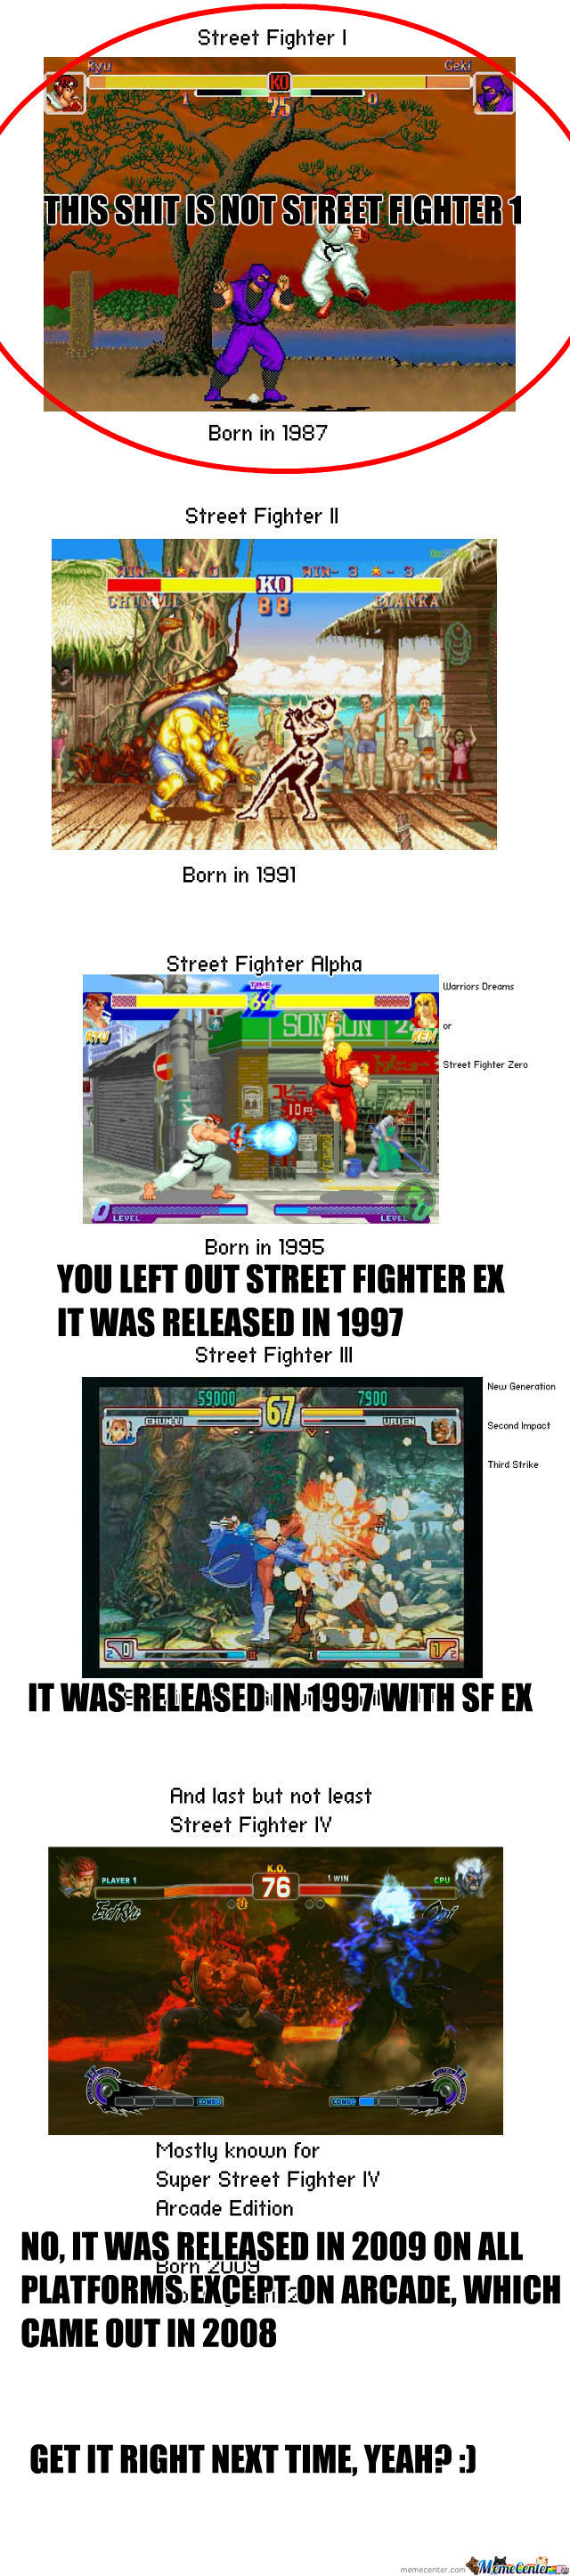 [RMX] 25 Years Of Street Fighter